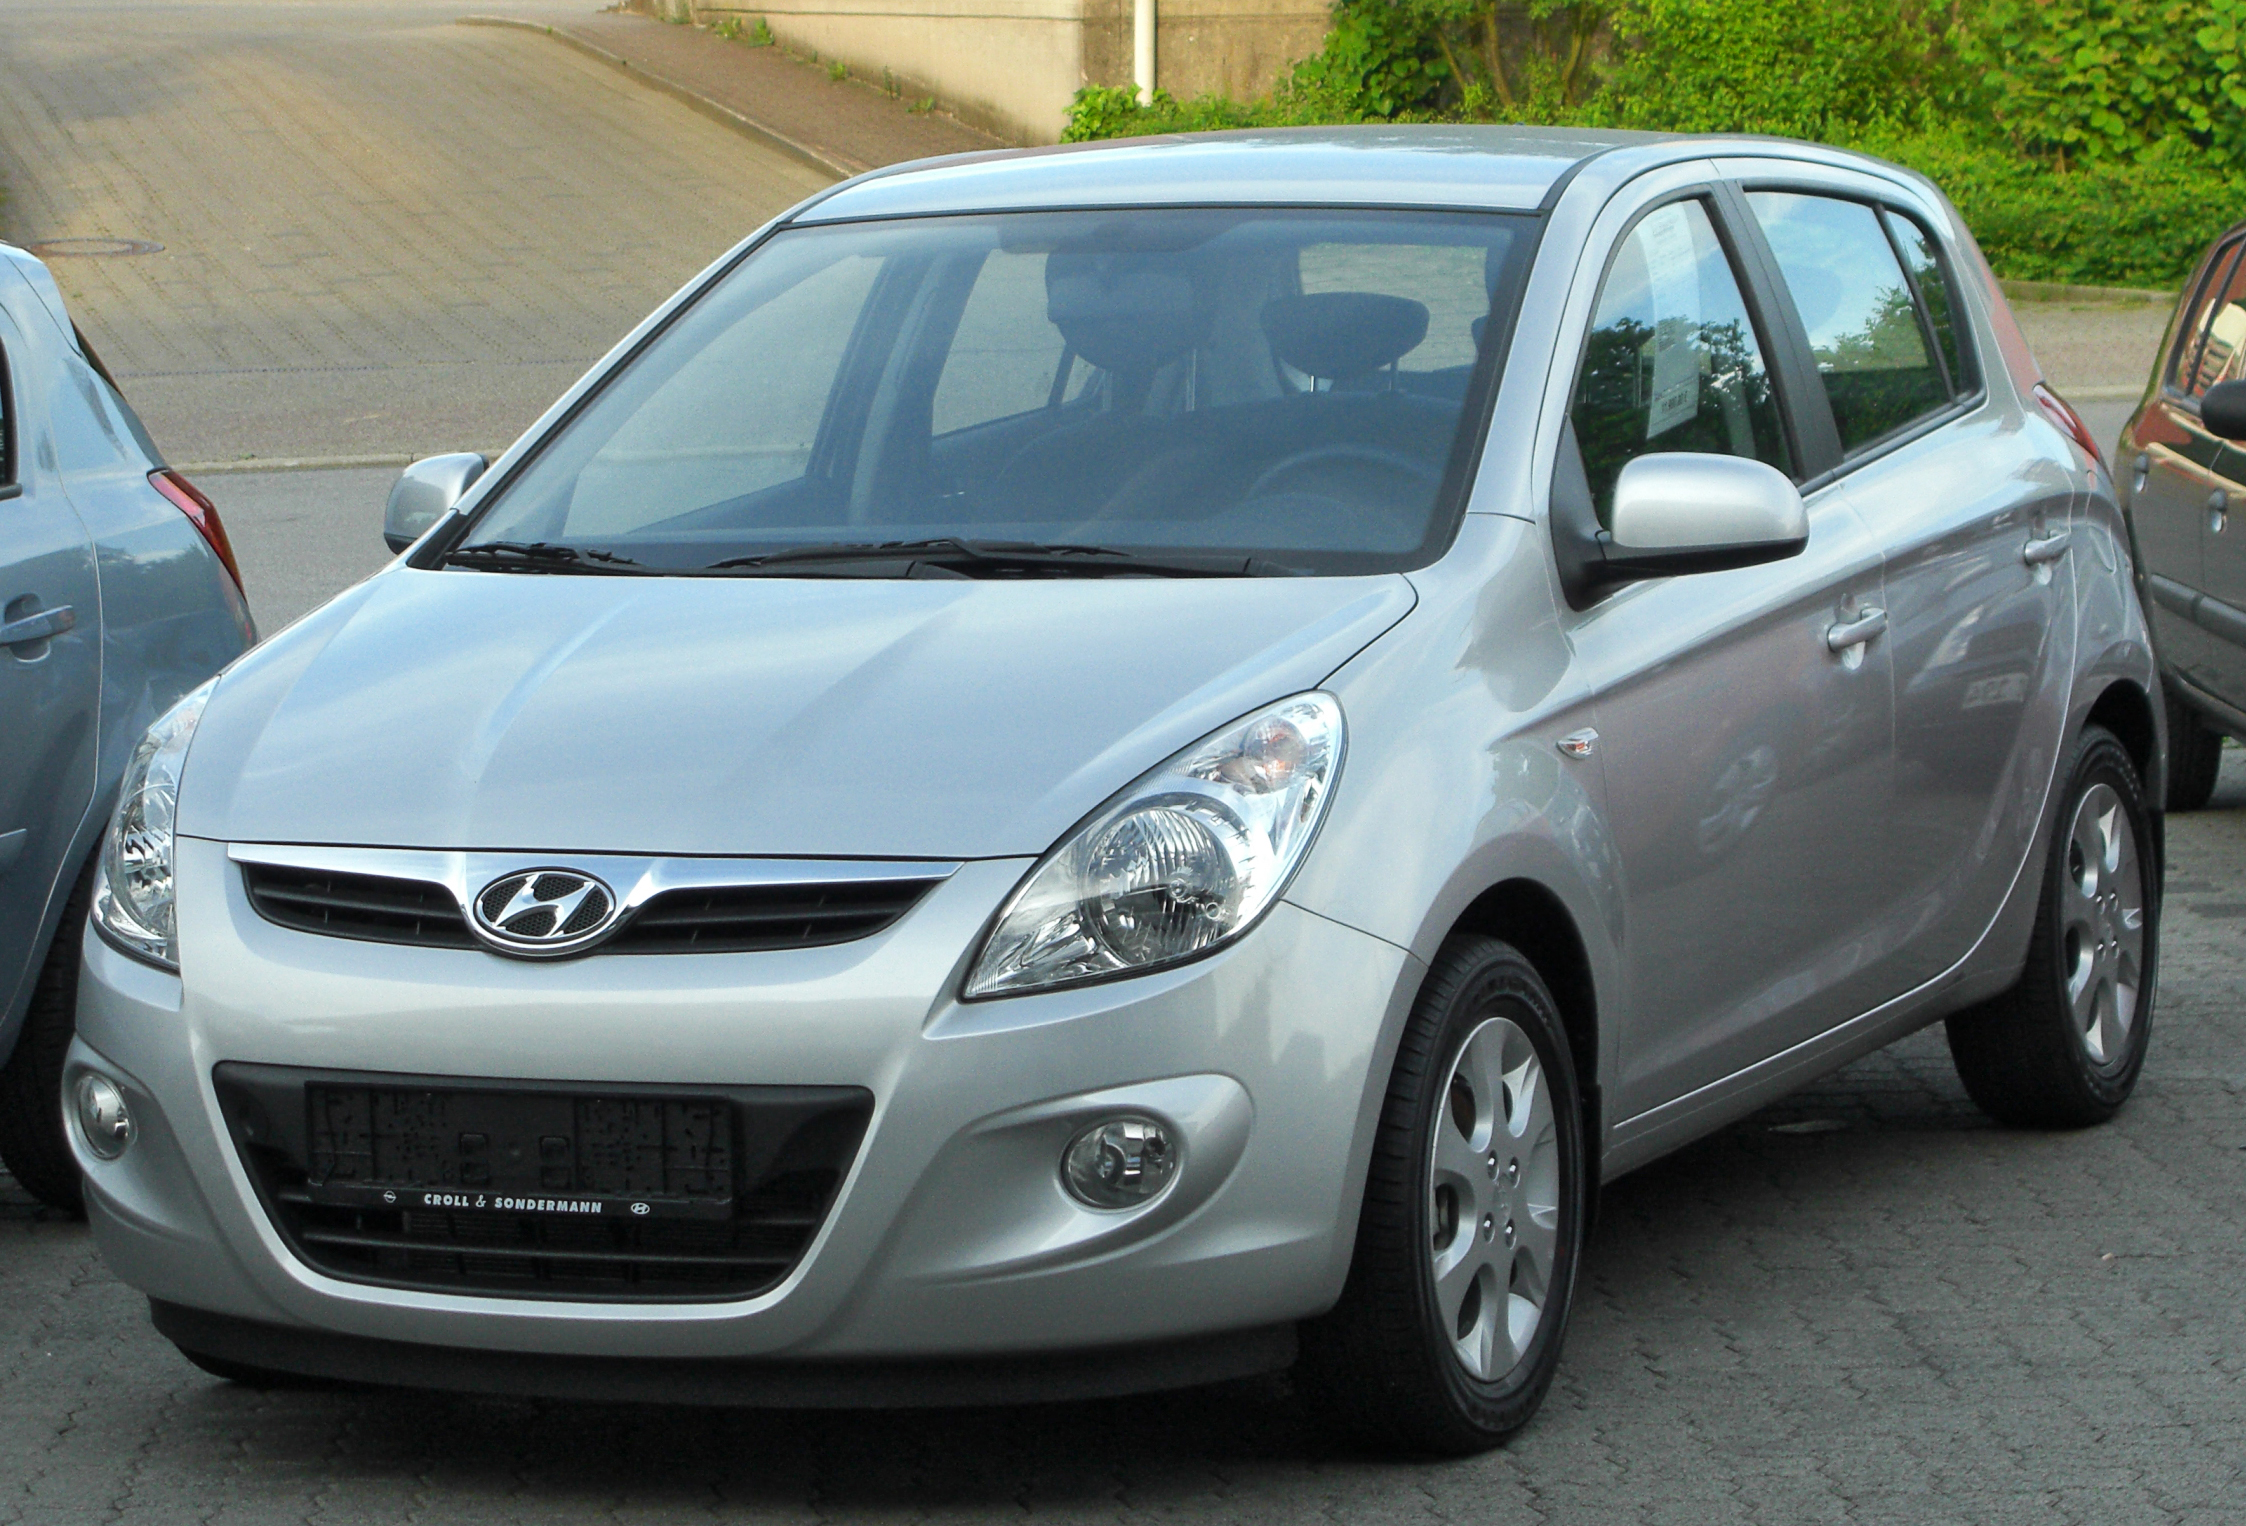 2010 hyundai i20 pictures information and specs auto. Black Bedroom Furniture Sets. Home Design Ideas